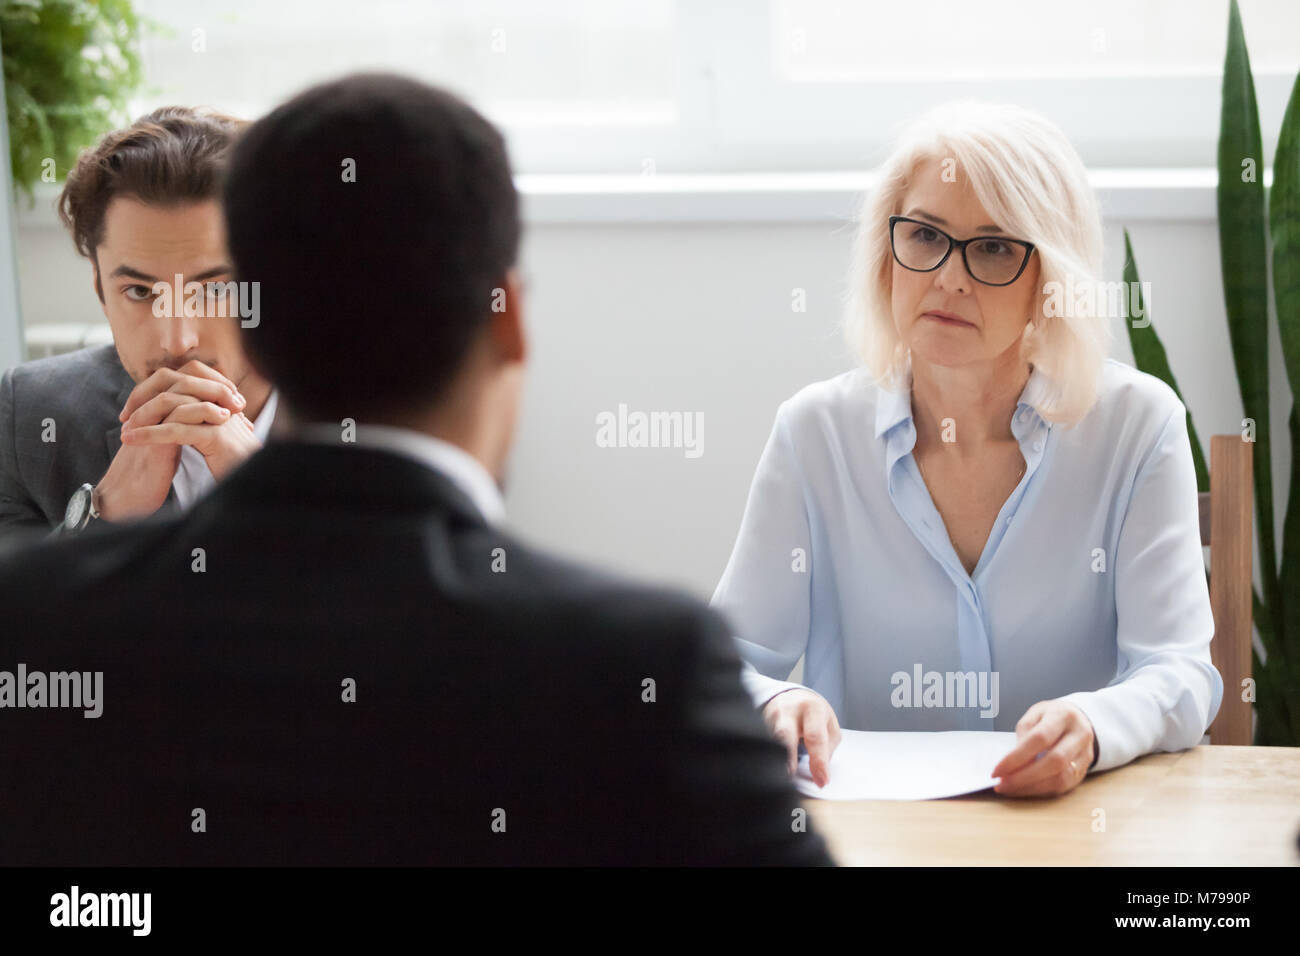 Serious attentive senior hr listening to candidate at job interv - Stock Image